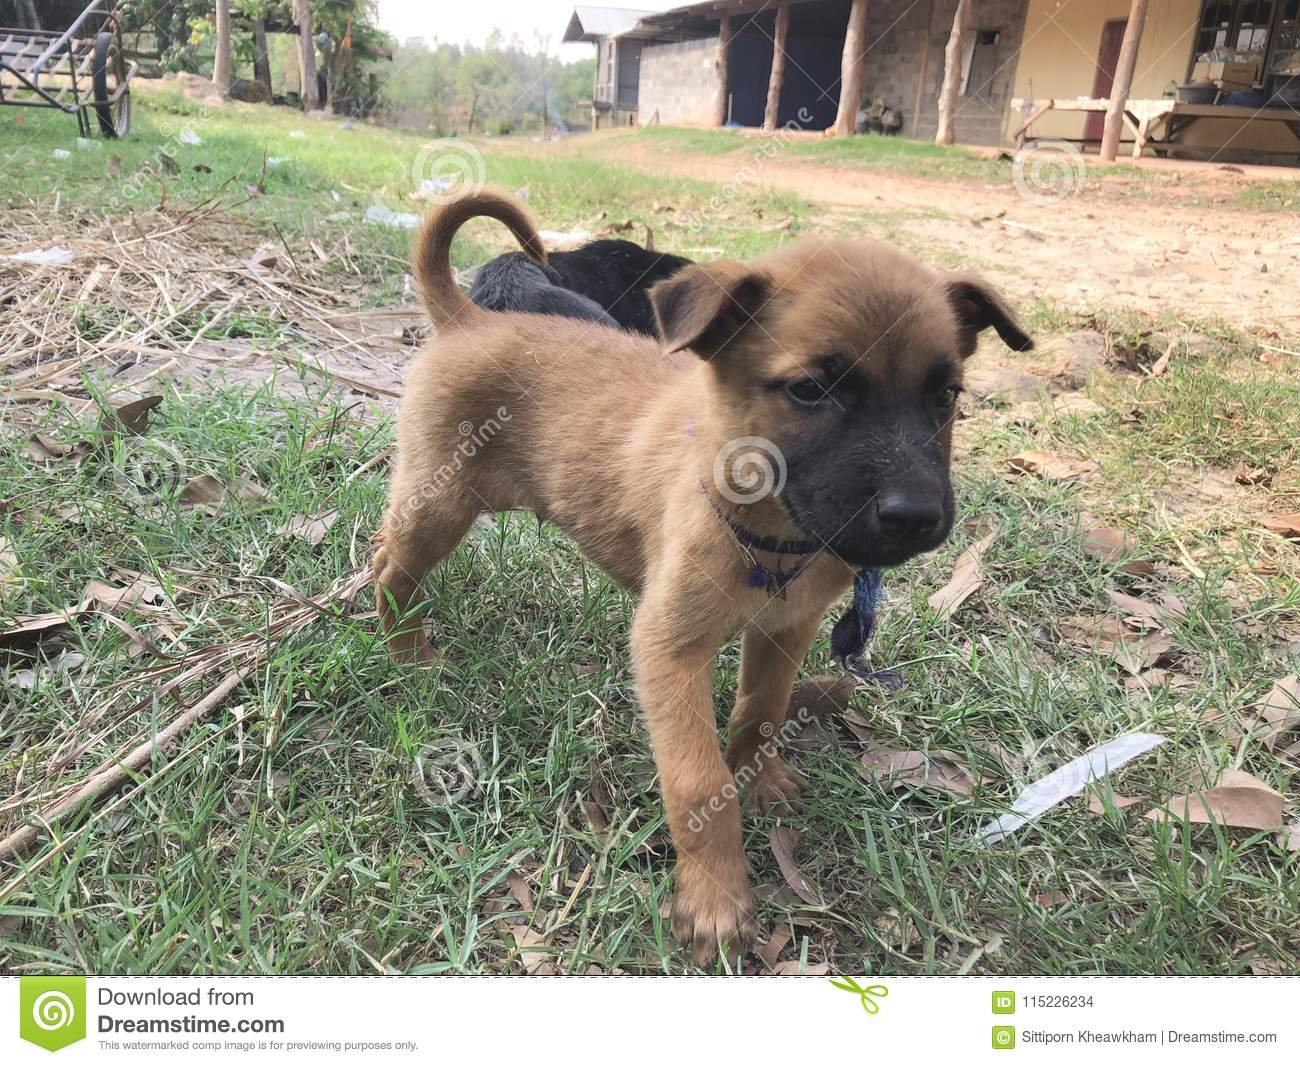 Sterilization of dogs - is it necessary